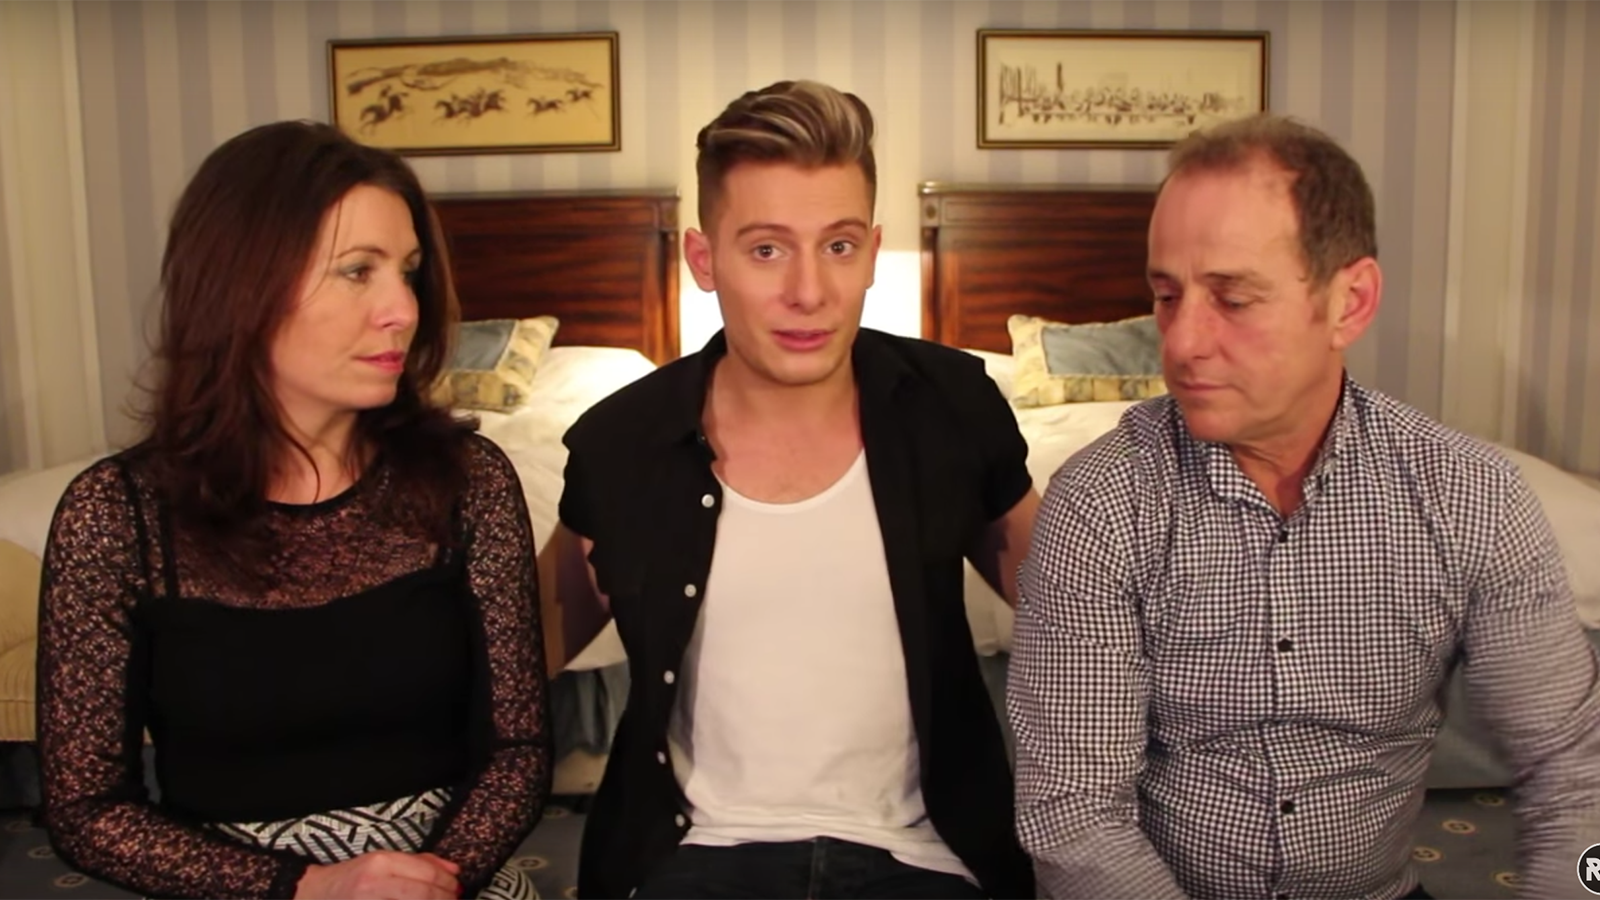 YouTube Star's Dad Talks About His Suicidal Thoughts After His Son Came Out